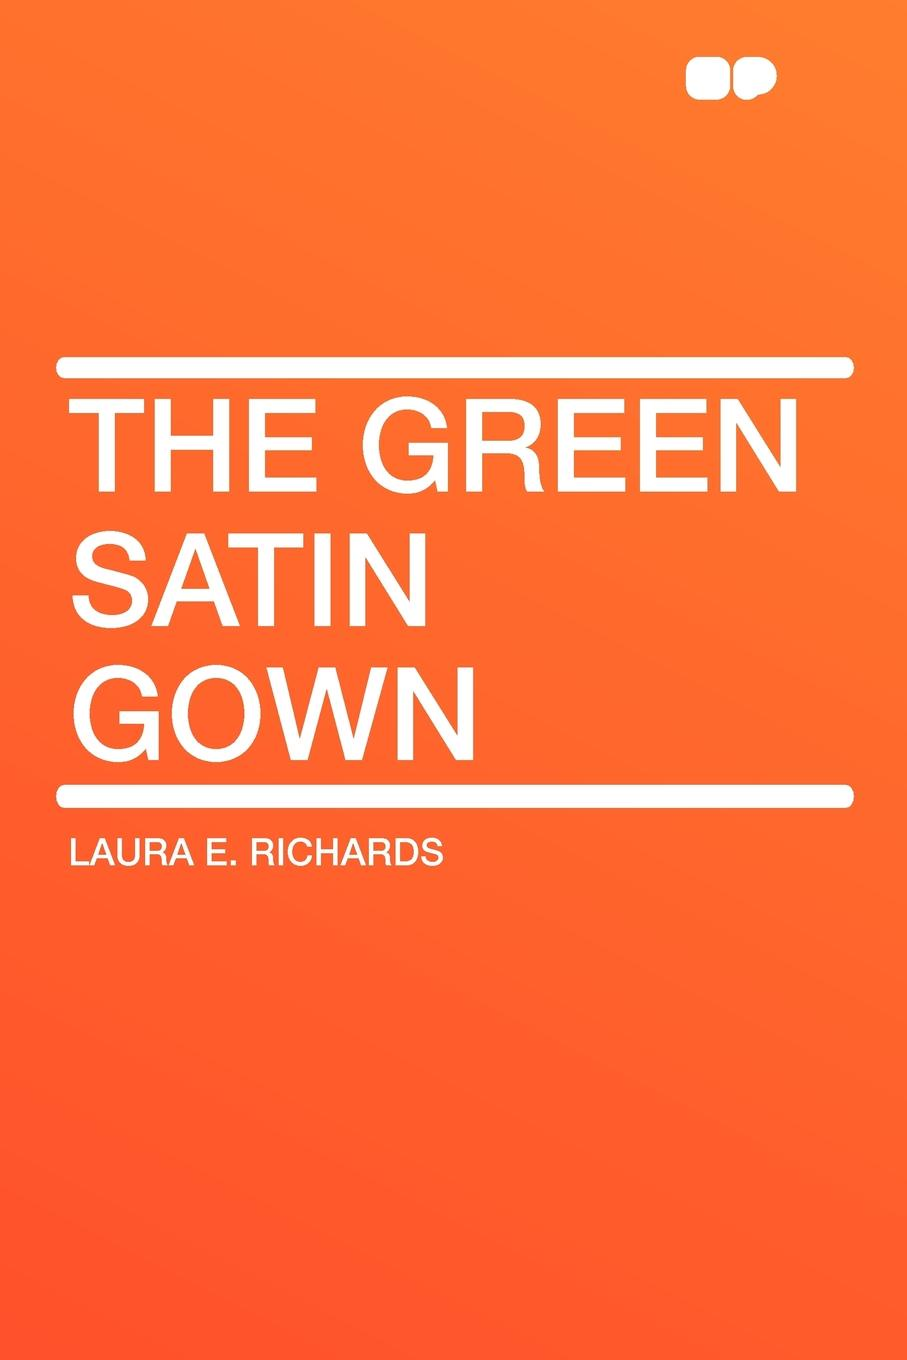 Laura E. Richards The Green Satin Gown